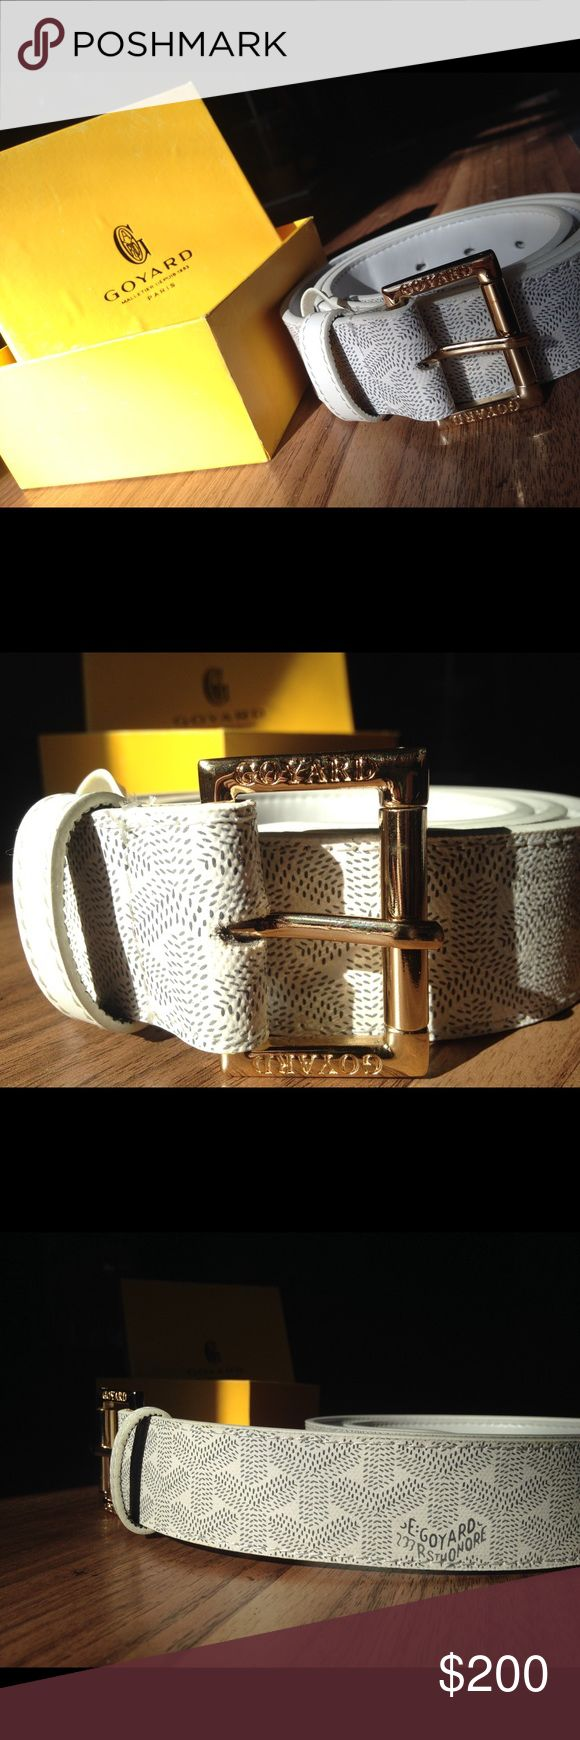 Men's goyard belt all white Men's all white goyard belt brand new never worn 🔥 gold buckle comes with box and dust bag !! ❤️ men's size 30-32 make me an offer ! Check my ratings ! And my closet ! Had to repost this listing because of spammers someone bought it then canceled the order so it's on my page as sold but it's not actually sold Goyard Accessories Belts